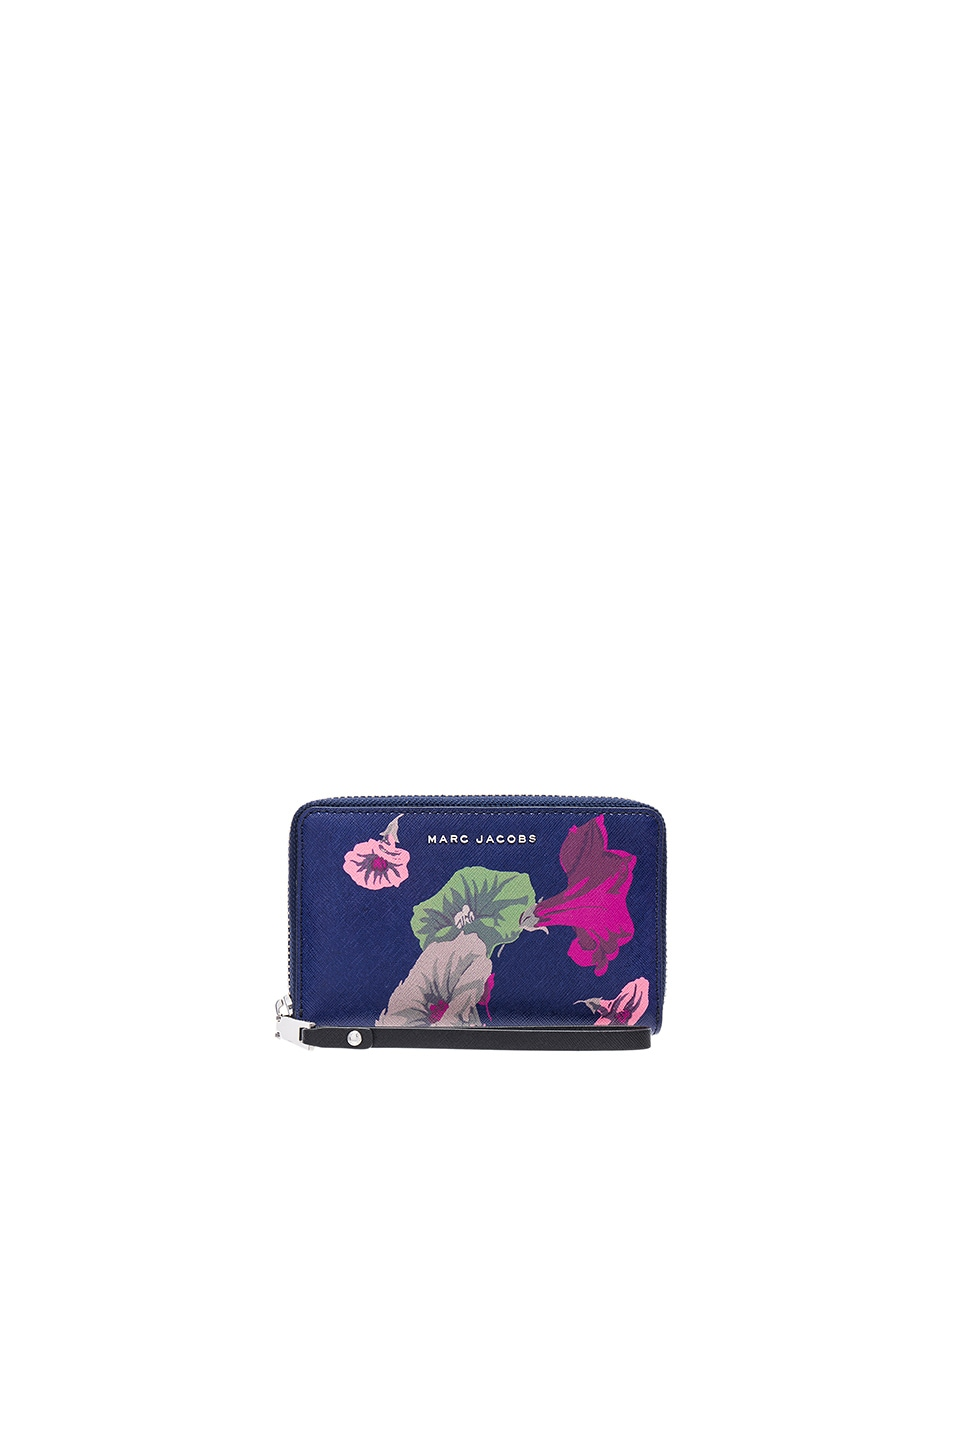 Saffiano Morning Glories Zip Phone Wristlet by Marc Jacobs